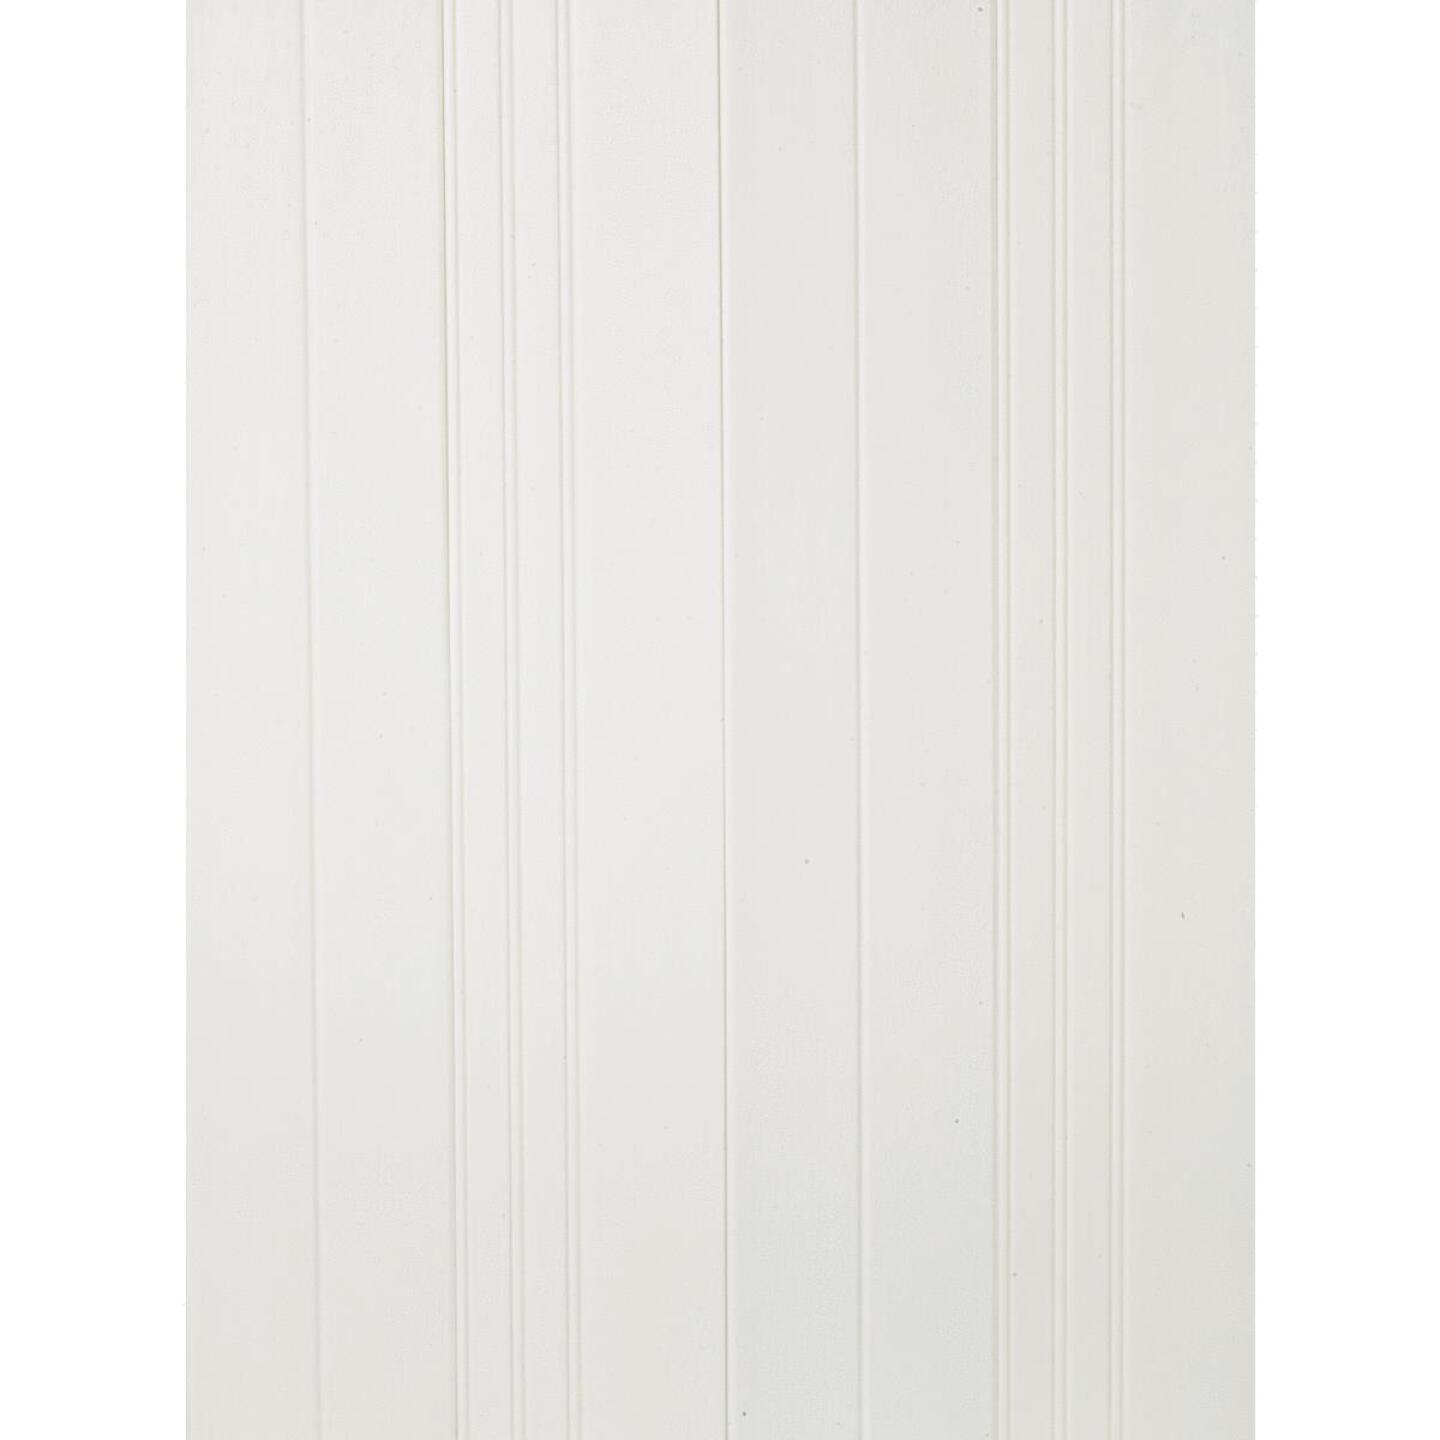 Plas-Tex PolyMAX 6 In. W. x 1/4 In. H. x 36 In. L. White Wainscot Planks (6-Pack) Image 7